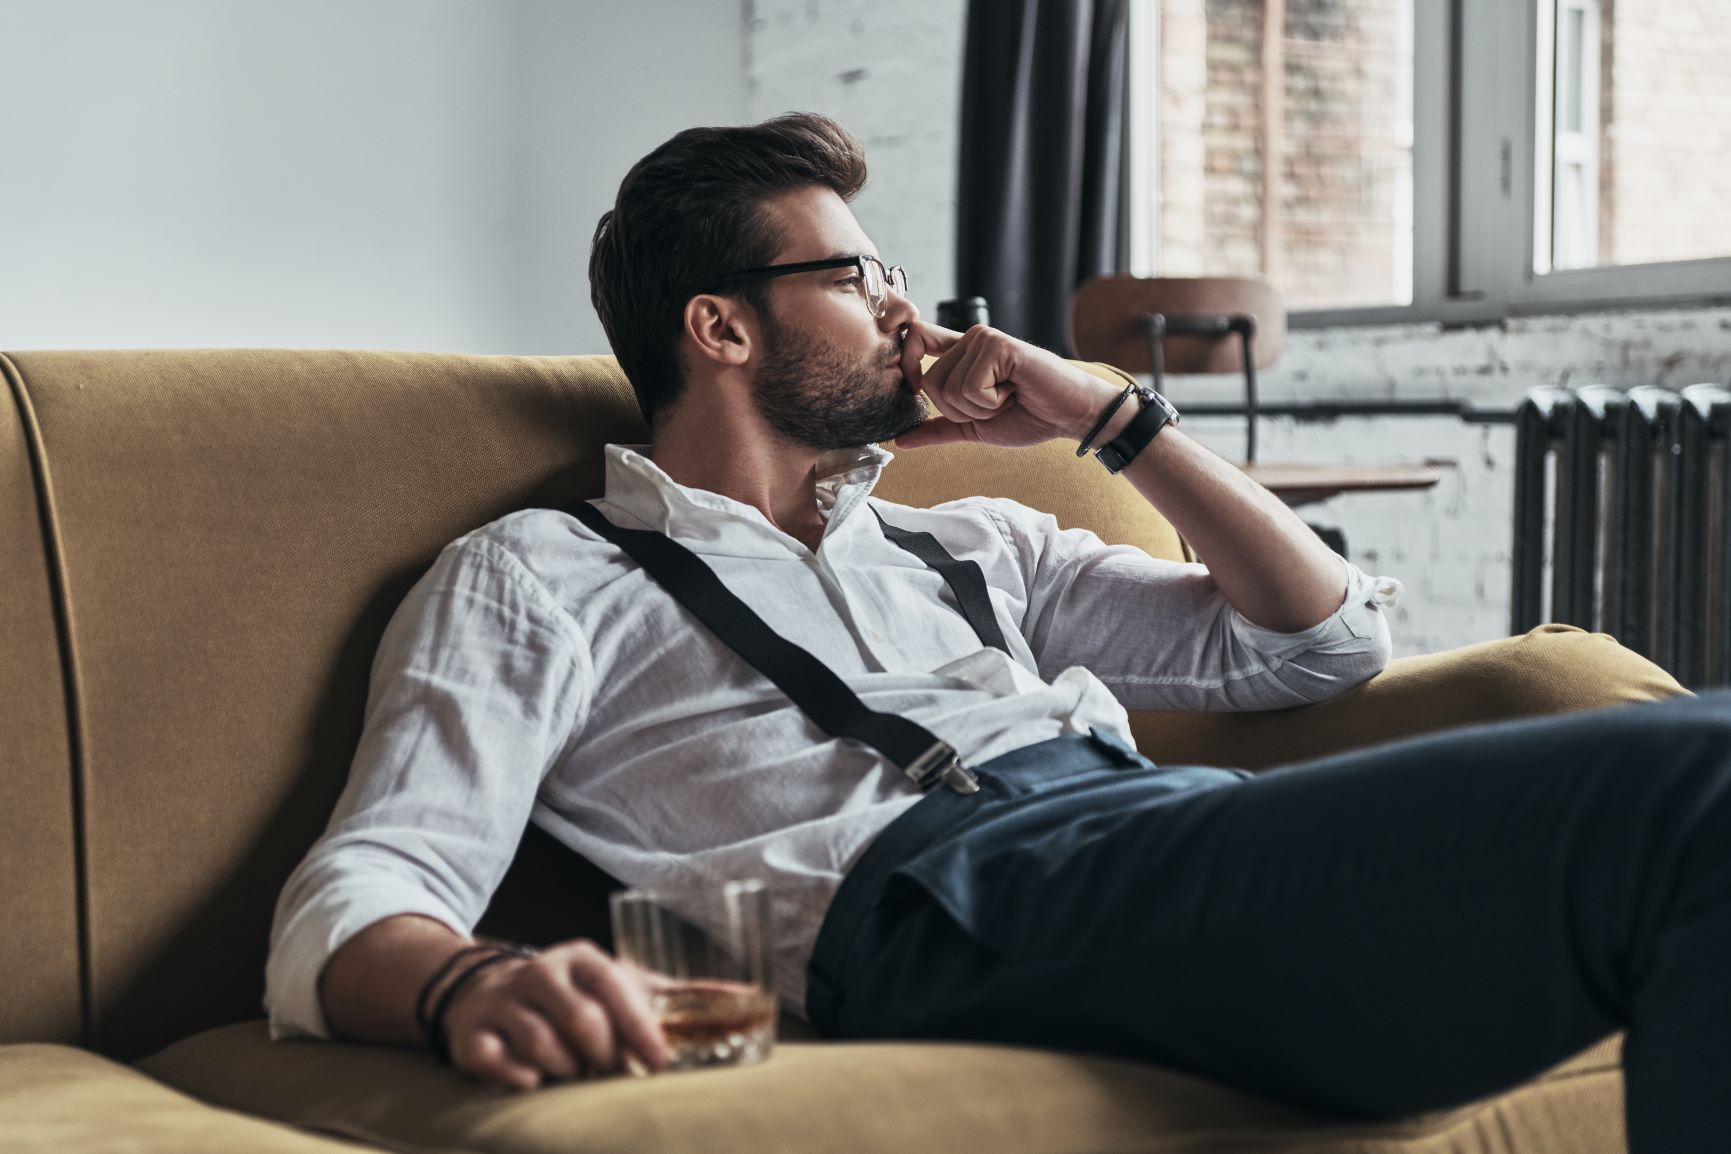 How do you know if you're an alcoholic?